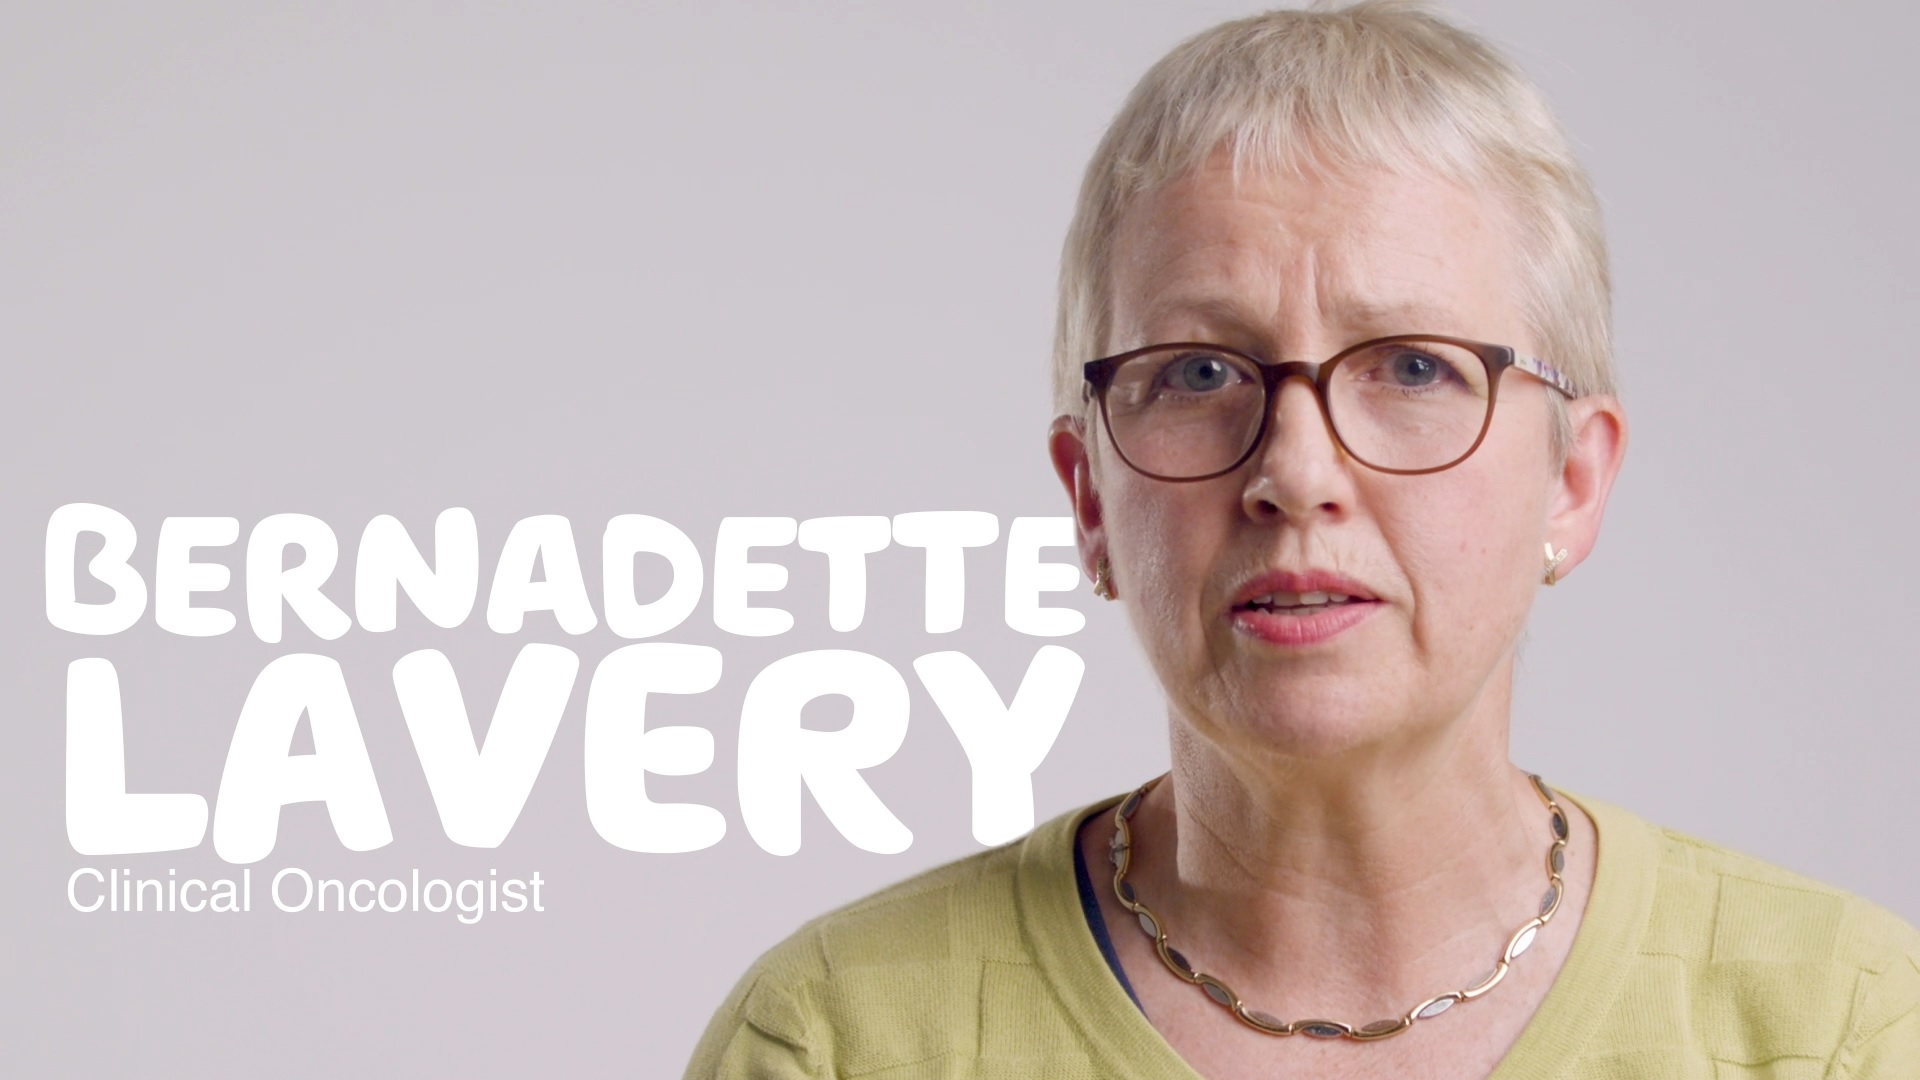 Bernadette Lavery, a clinical oncologist, talks you through what Breast Cancer is, the main types, risk factors, stages and common treatments available to you. [03:35]